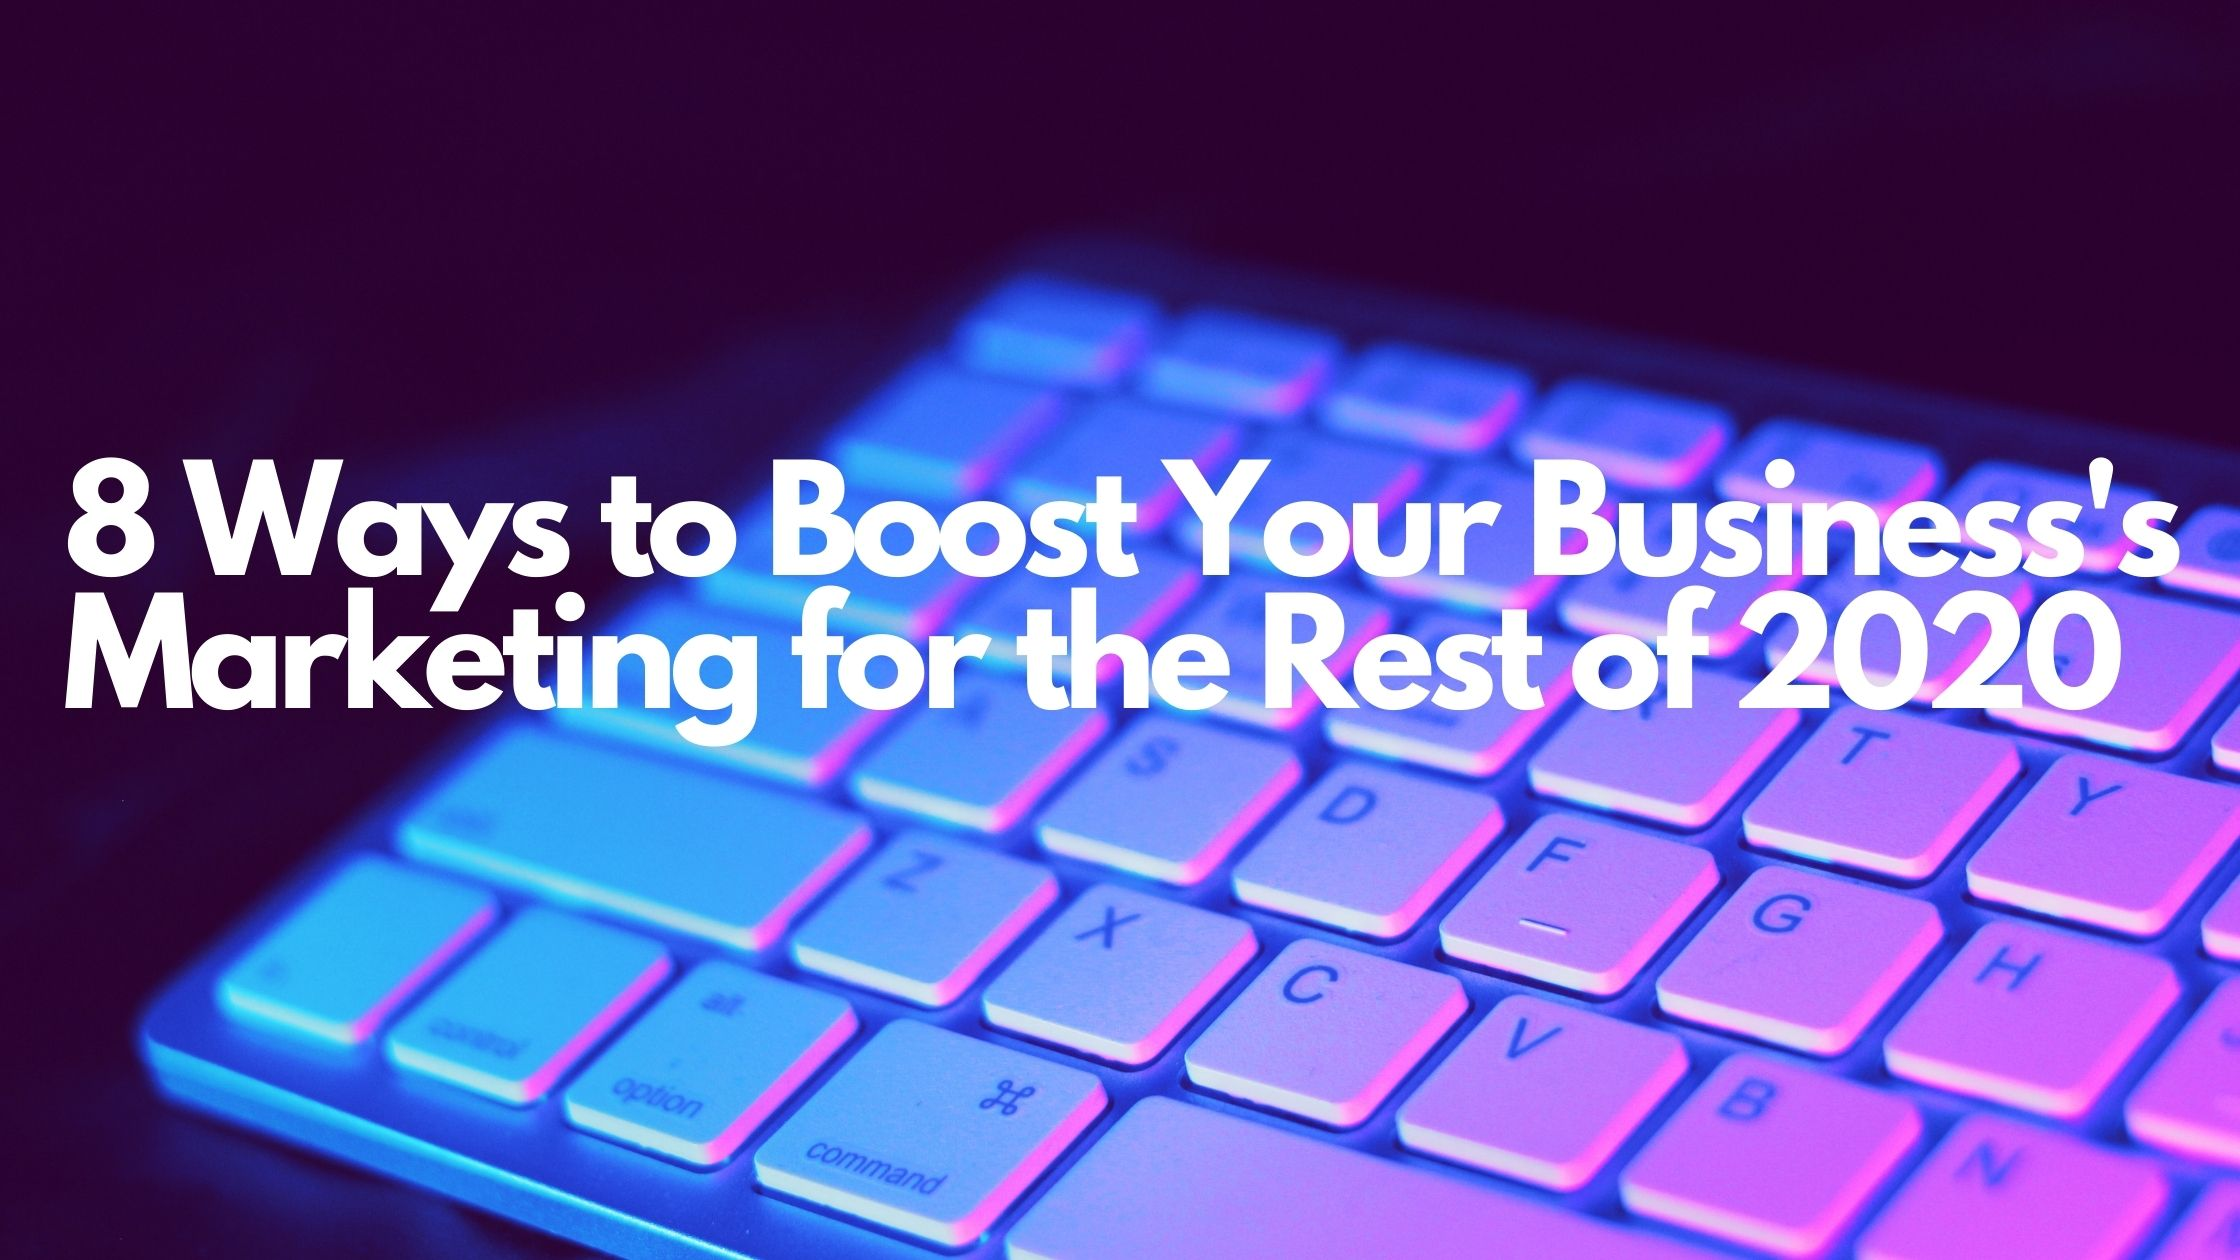 8 Ways to Boost Your Business Marketing for the Rest of 2020